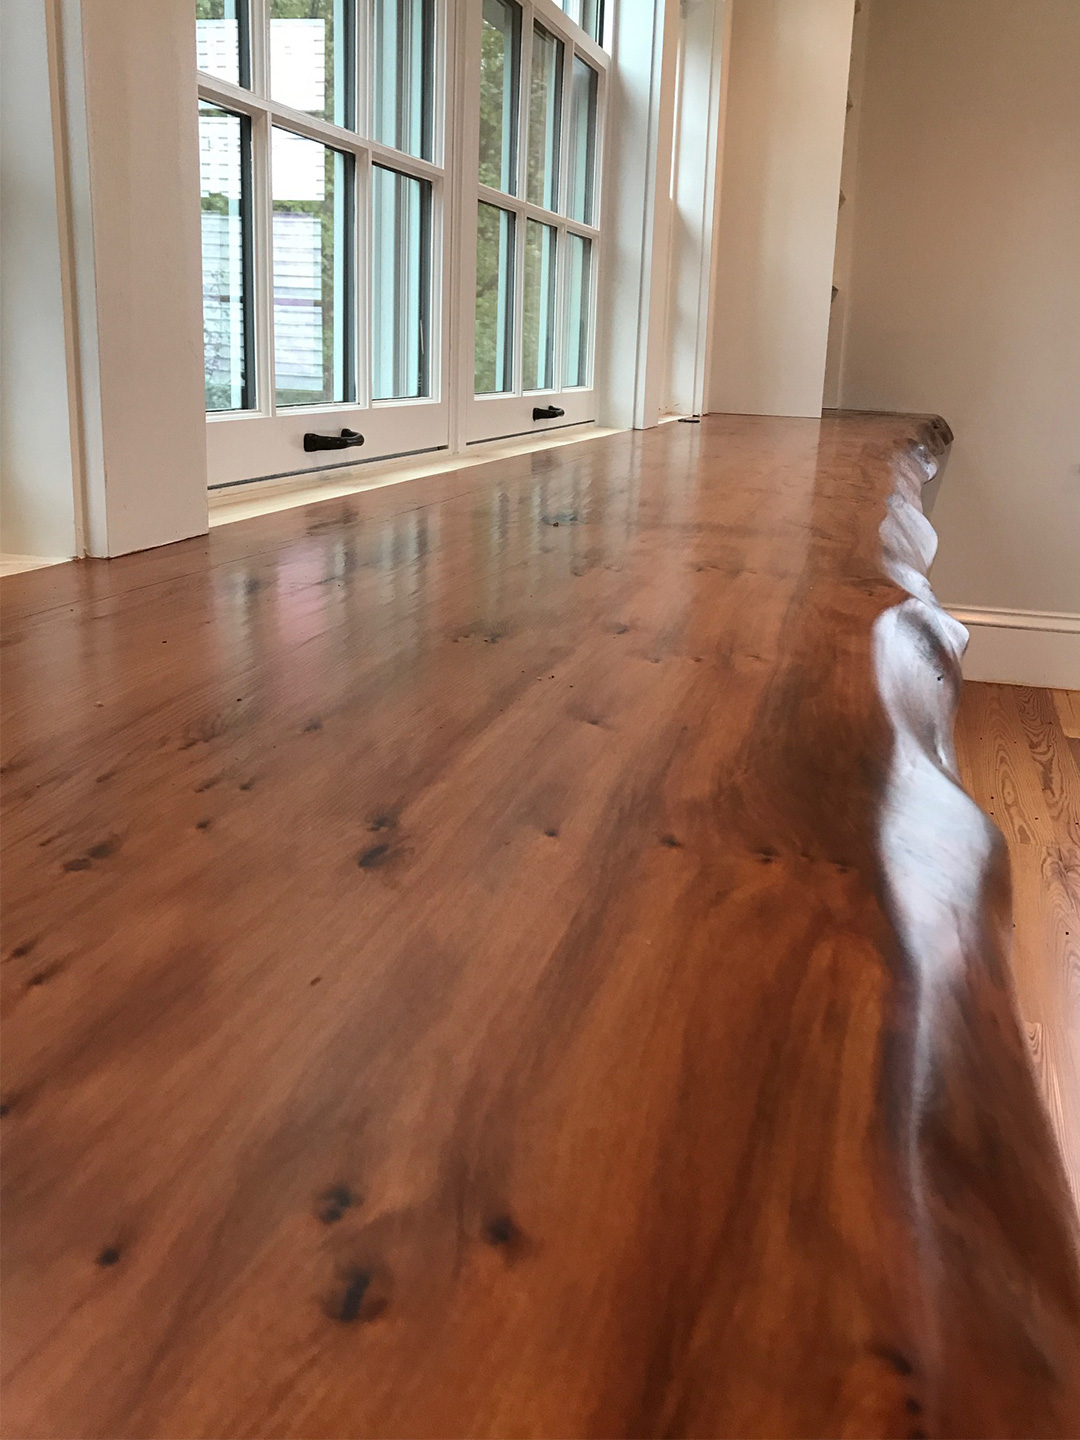 Longleaf lumber reclaimed heart pine redwood Salvaged pine flooring